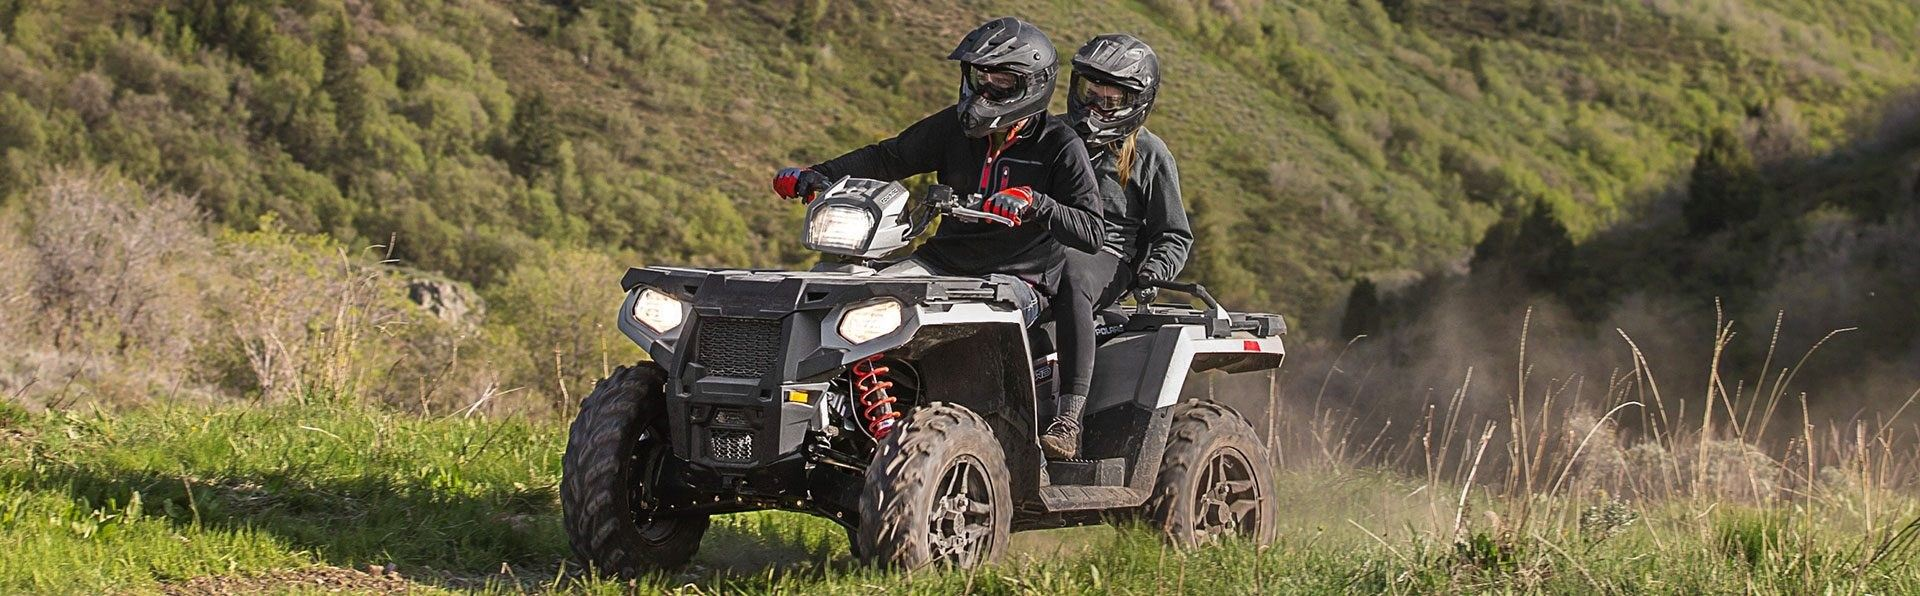 2017-Polaris-Sportsman-Touring-570-SP